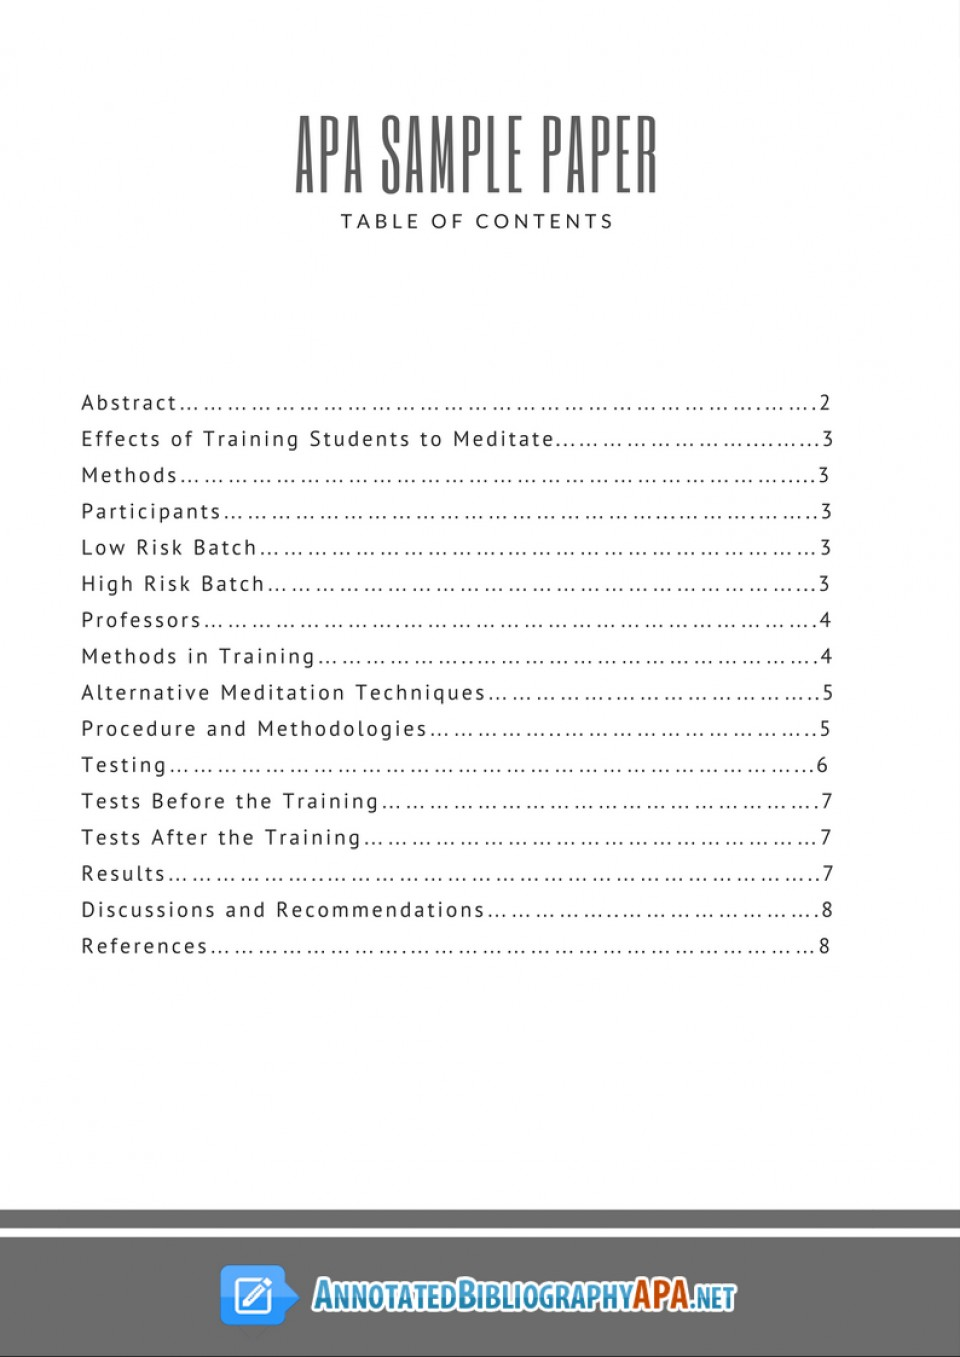 002 Apa Style Research Paper Example With Table Of Contents Stunning 960